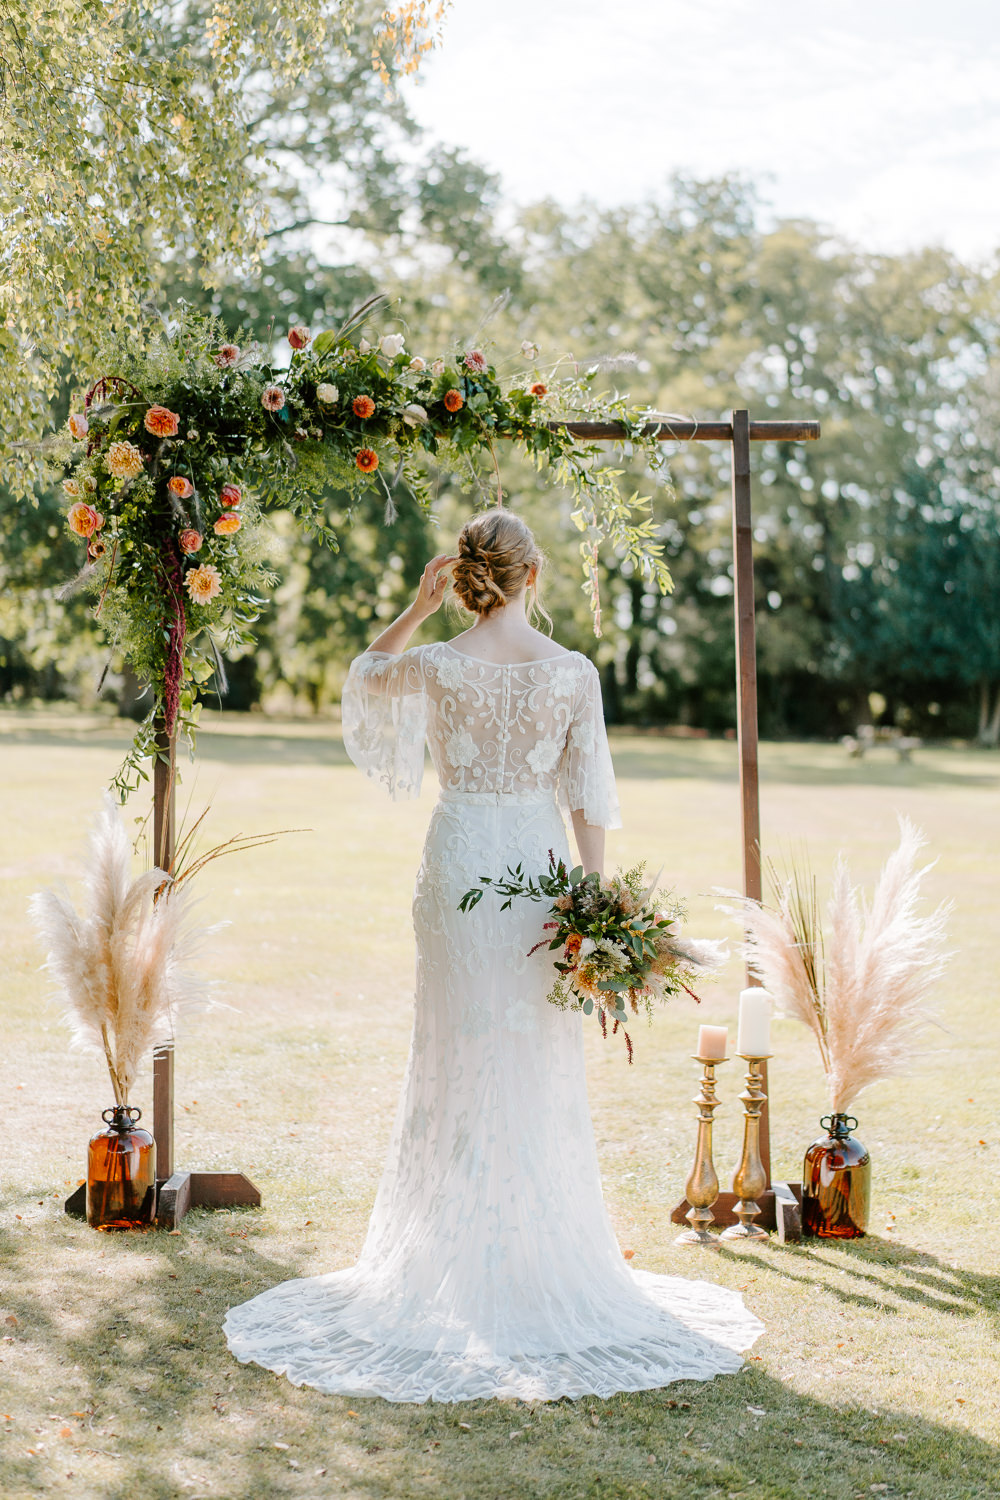 Flower Arch Backdrop Contemporary Wedding Ideas Chloe Ely Photography